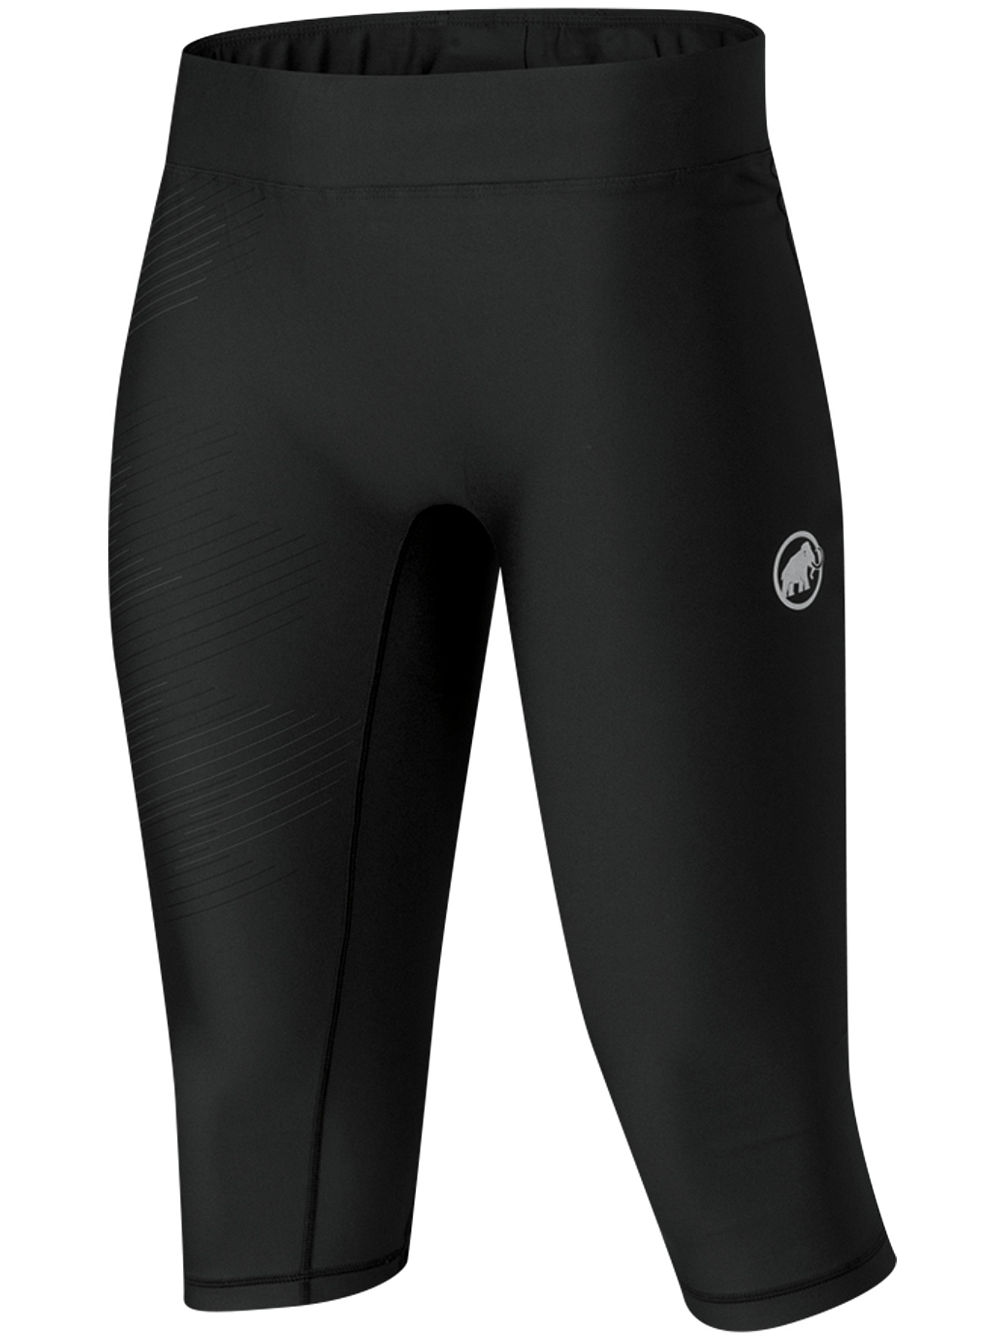 Mtr 201 Tight 3/4 Outdoor Pants